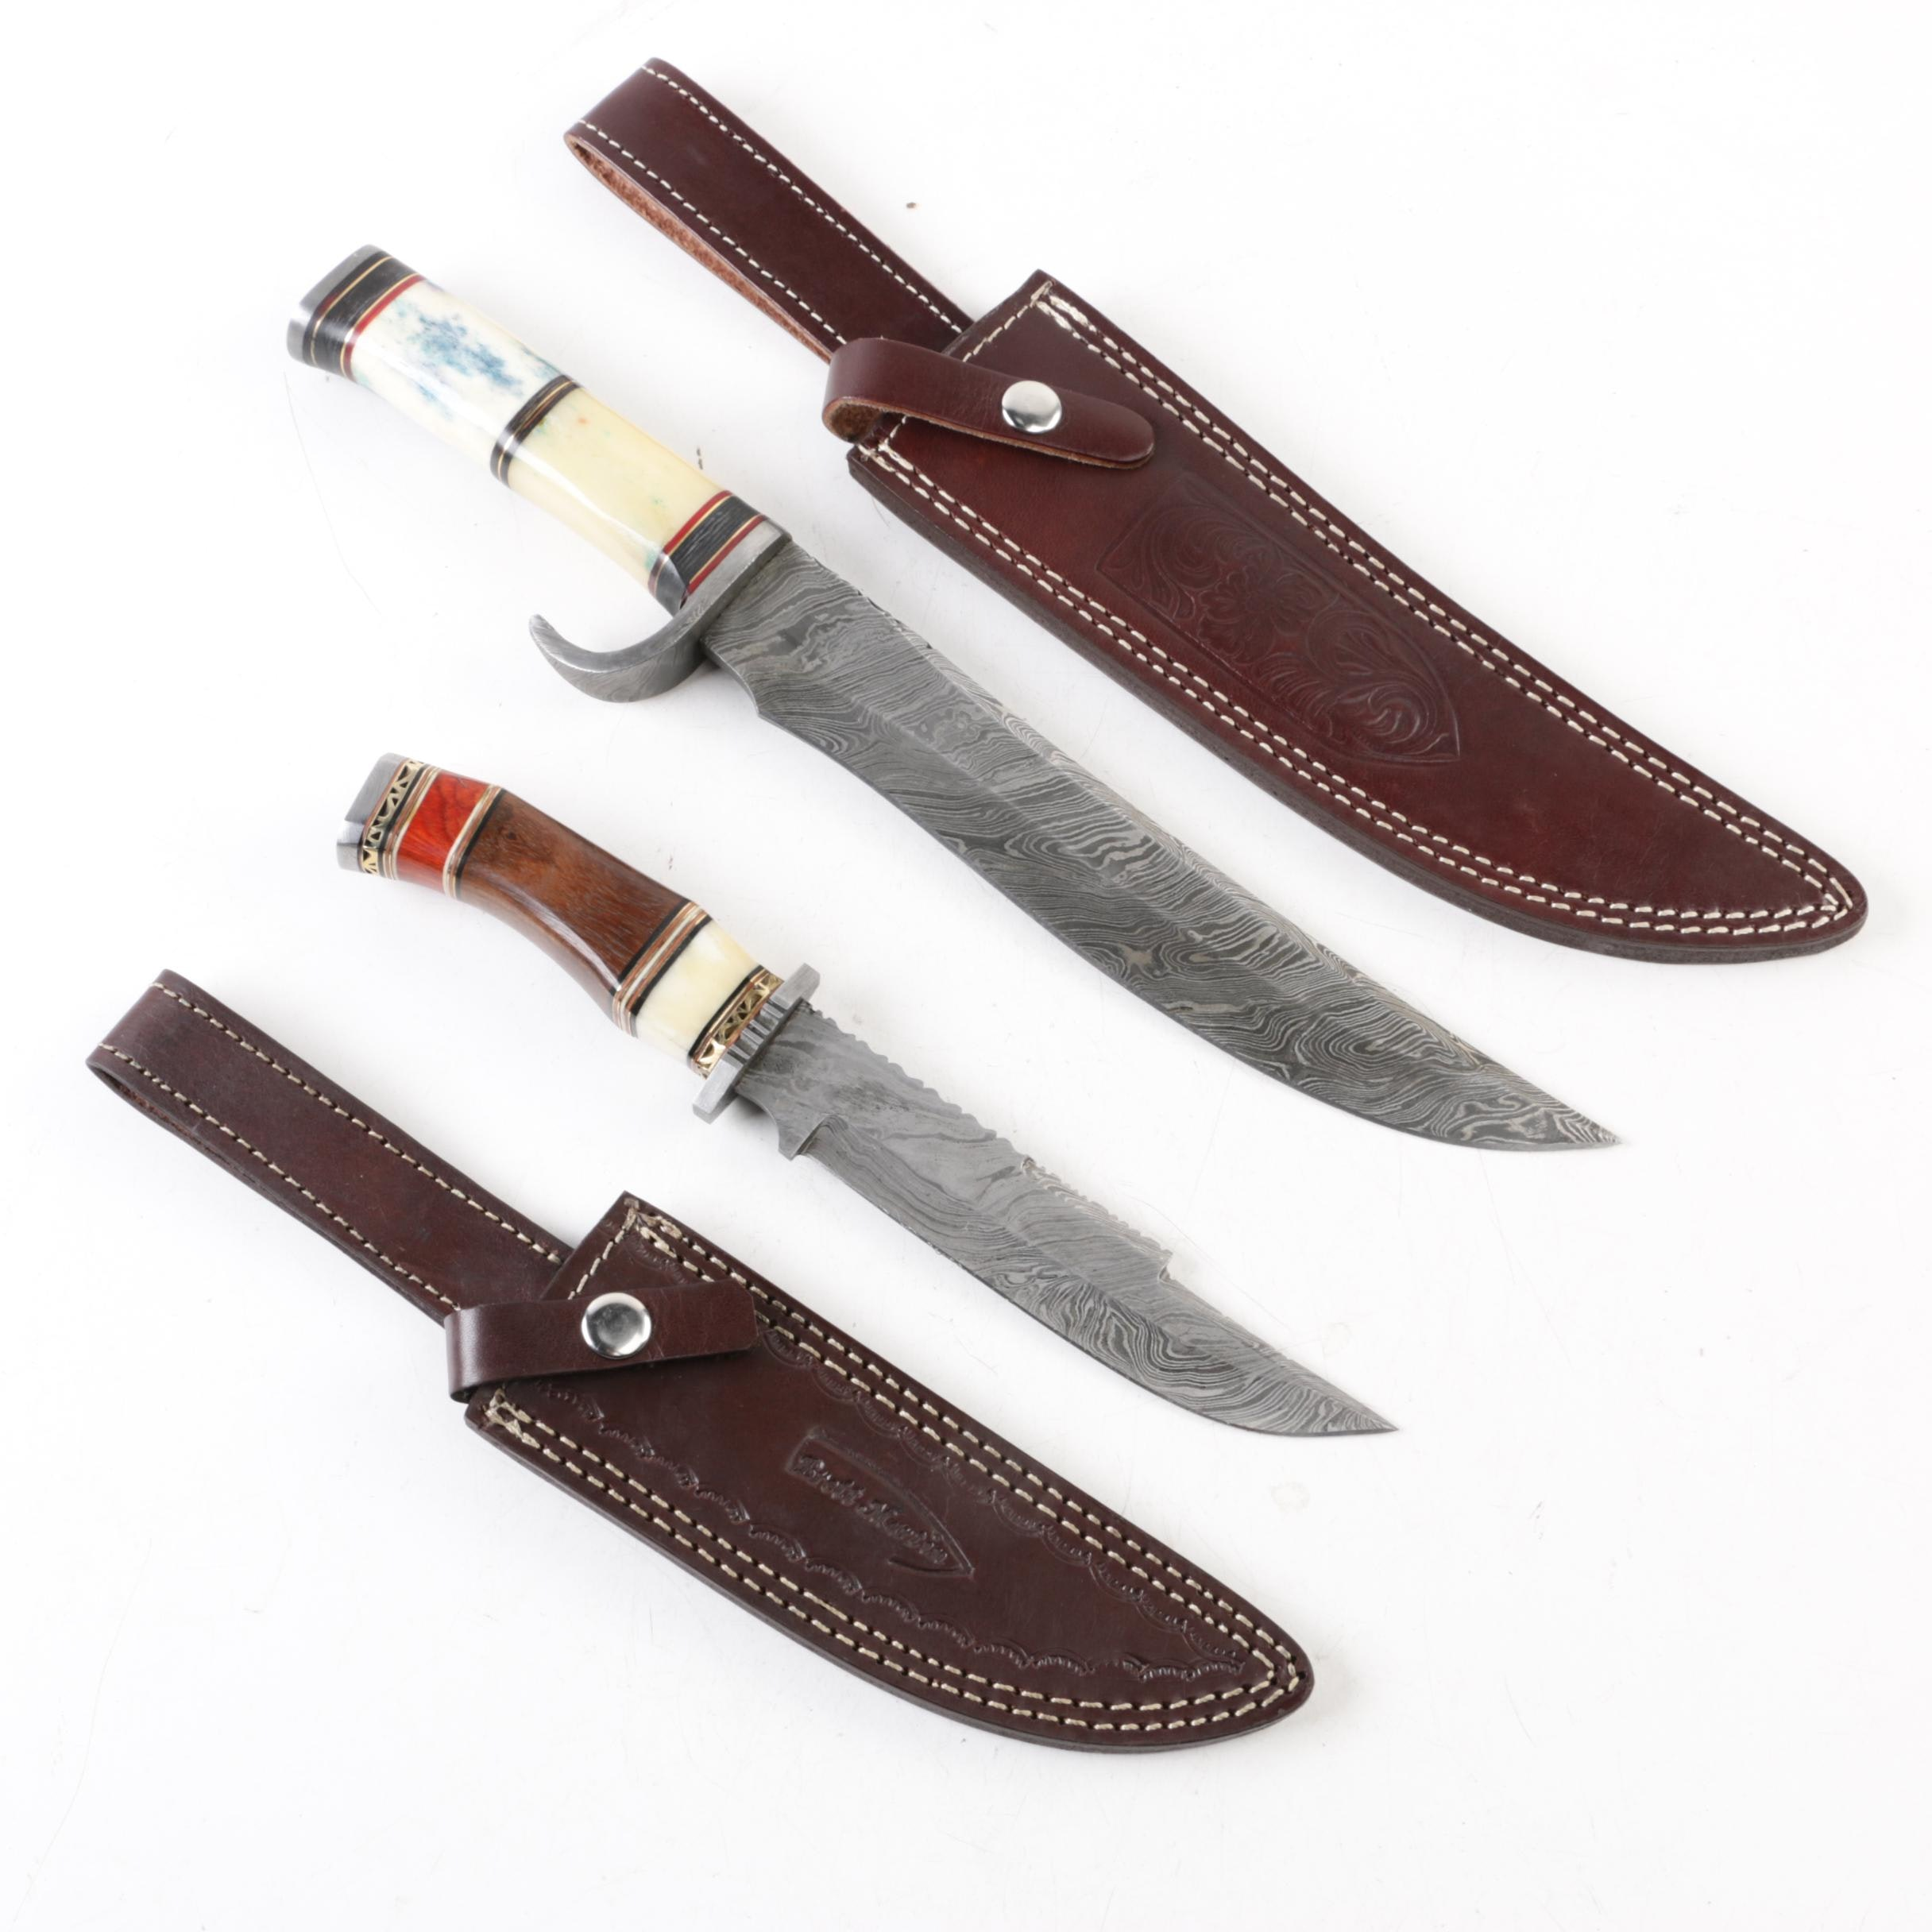 Knives with Damascus Steel Style Blades